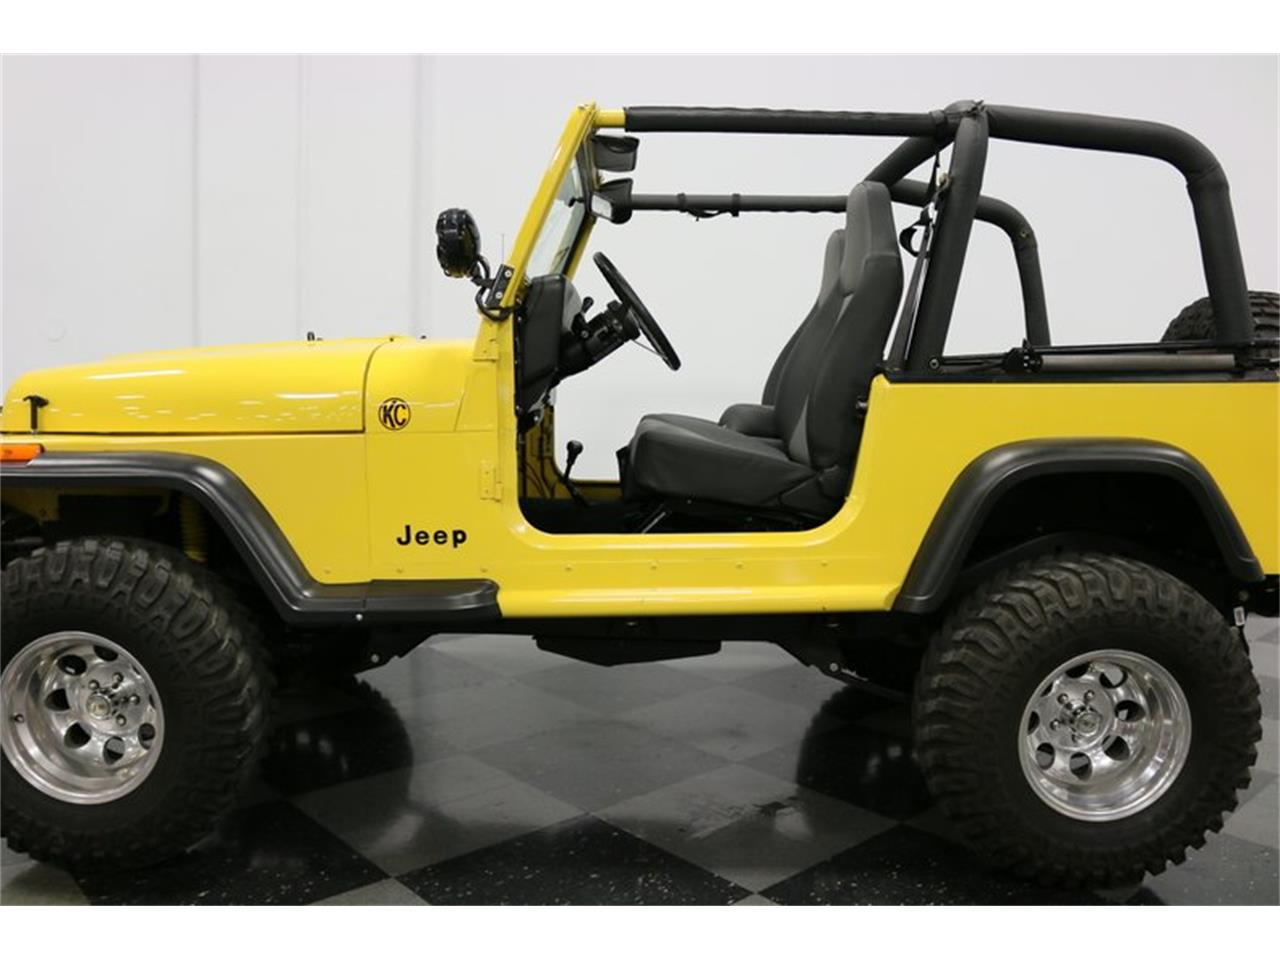 Large Picture of 1993 Jeep Wrangler located in Texas Offered by Streetside Classics - Dallas / Fort Worth - P701